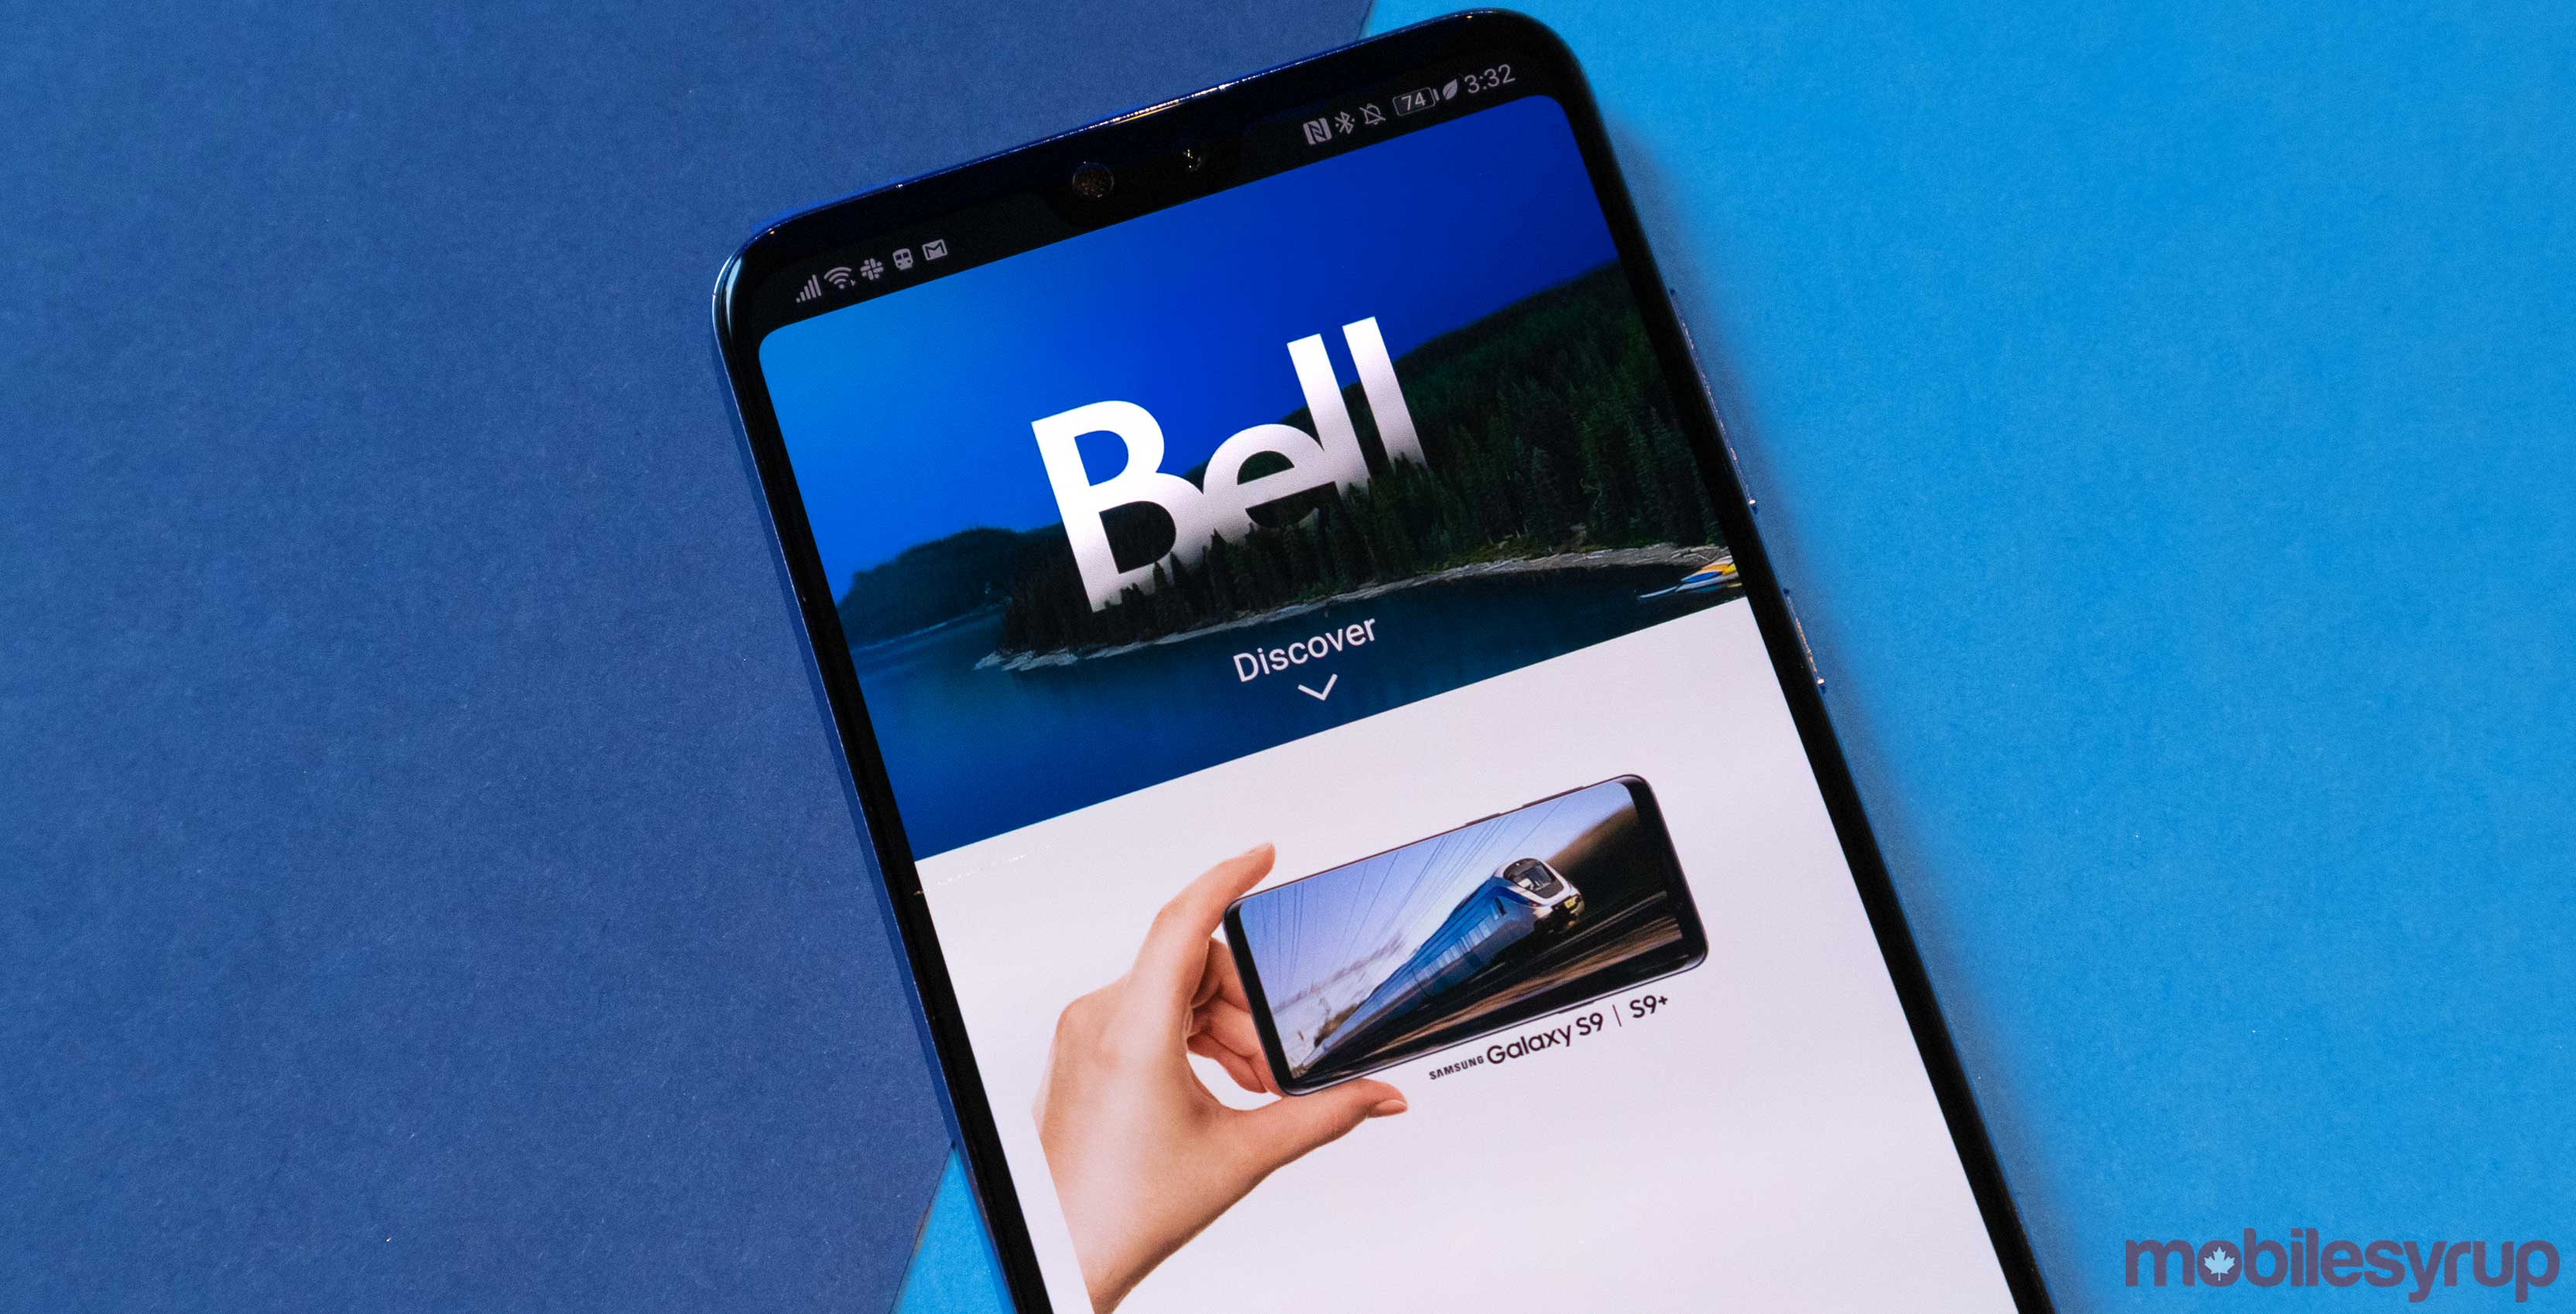 Bell says CRTC wholesale rates decision will have $100 million impact on its business